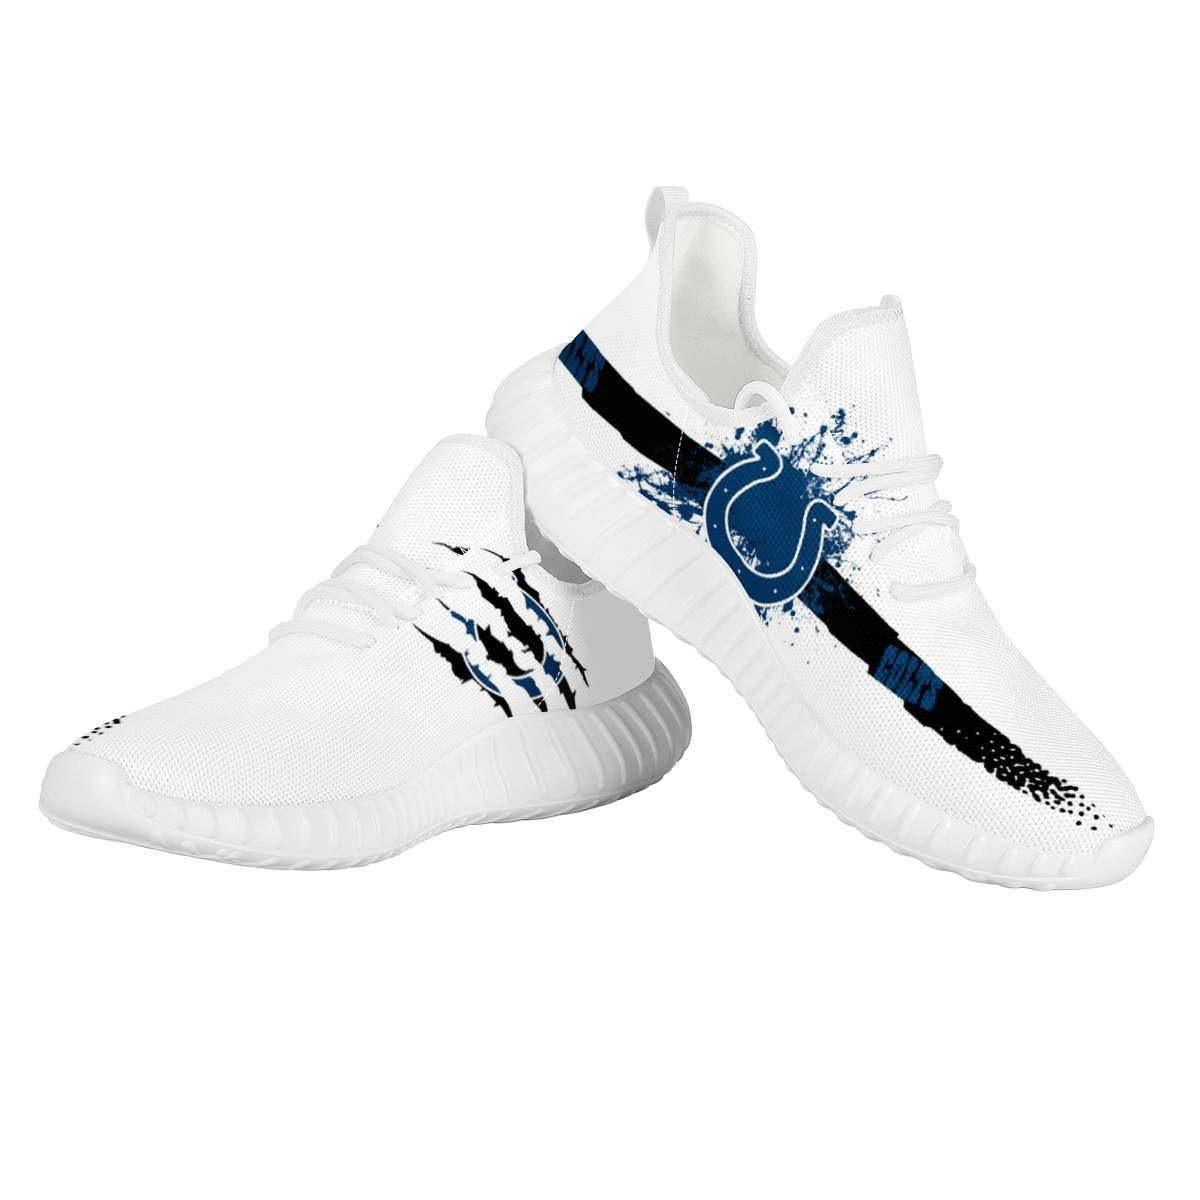 Men's Indianapolis Colts Mesh Knit Sneakers/Shoes 006